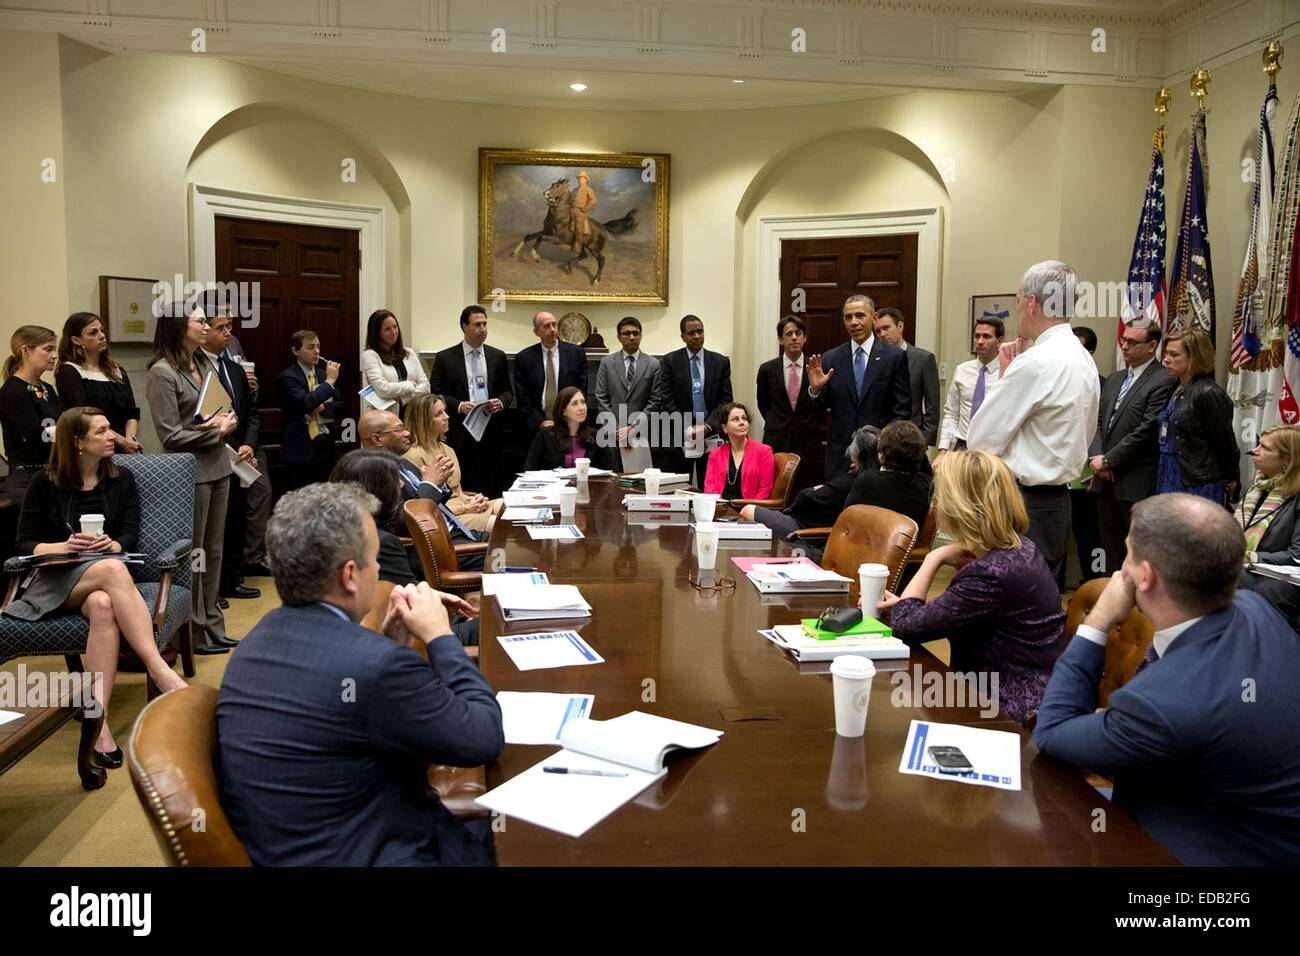 US President Barack Obama speaks White House staff in the Roosevelt Room the day after the democrats lost in the Stock Photo